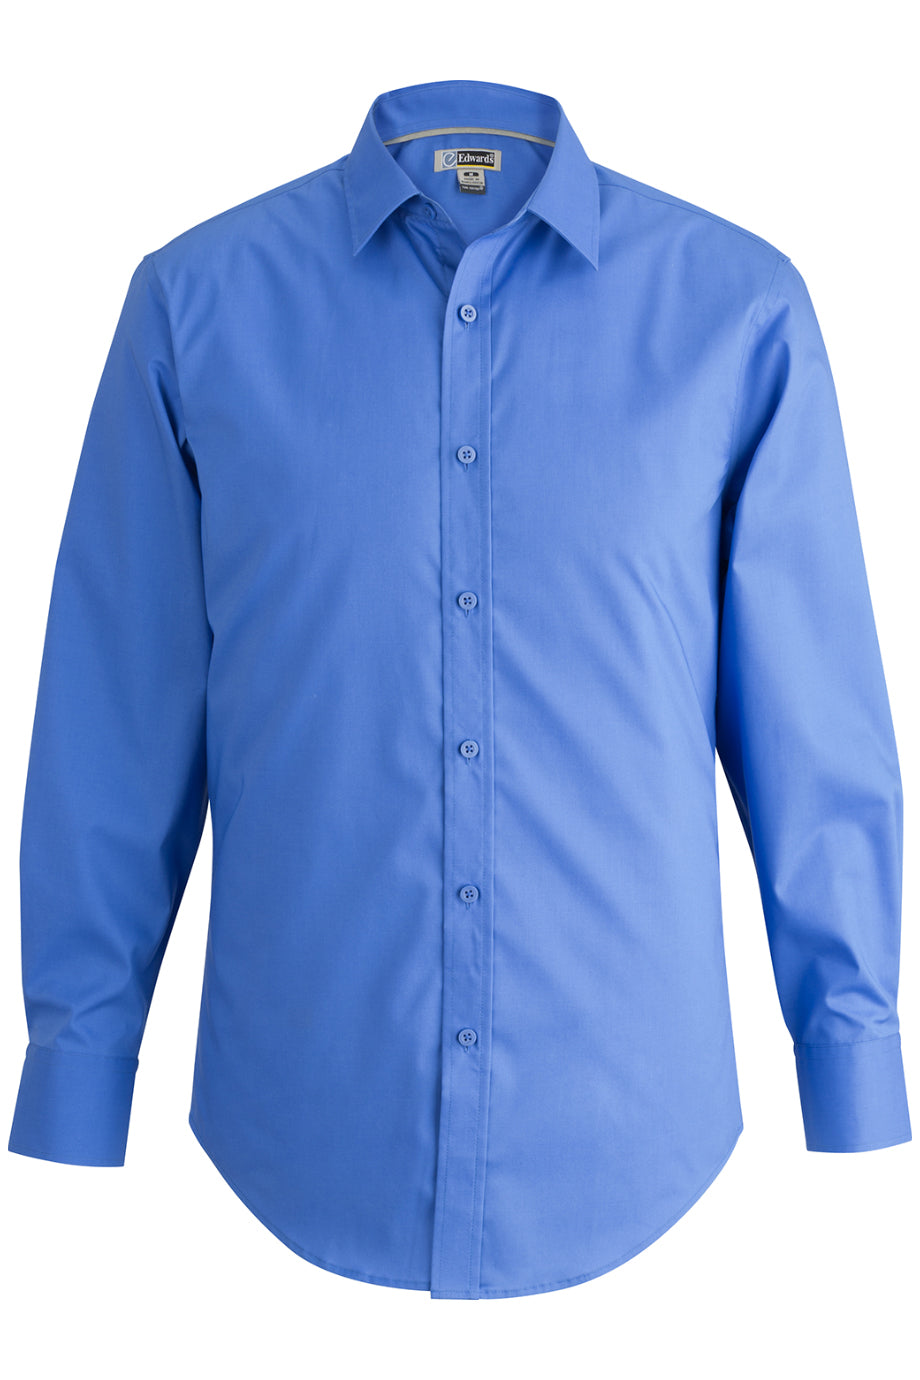 French Blue Edwards Mens L/S Stretch Broadcloth Shirt